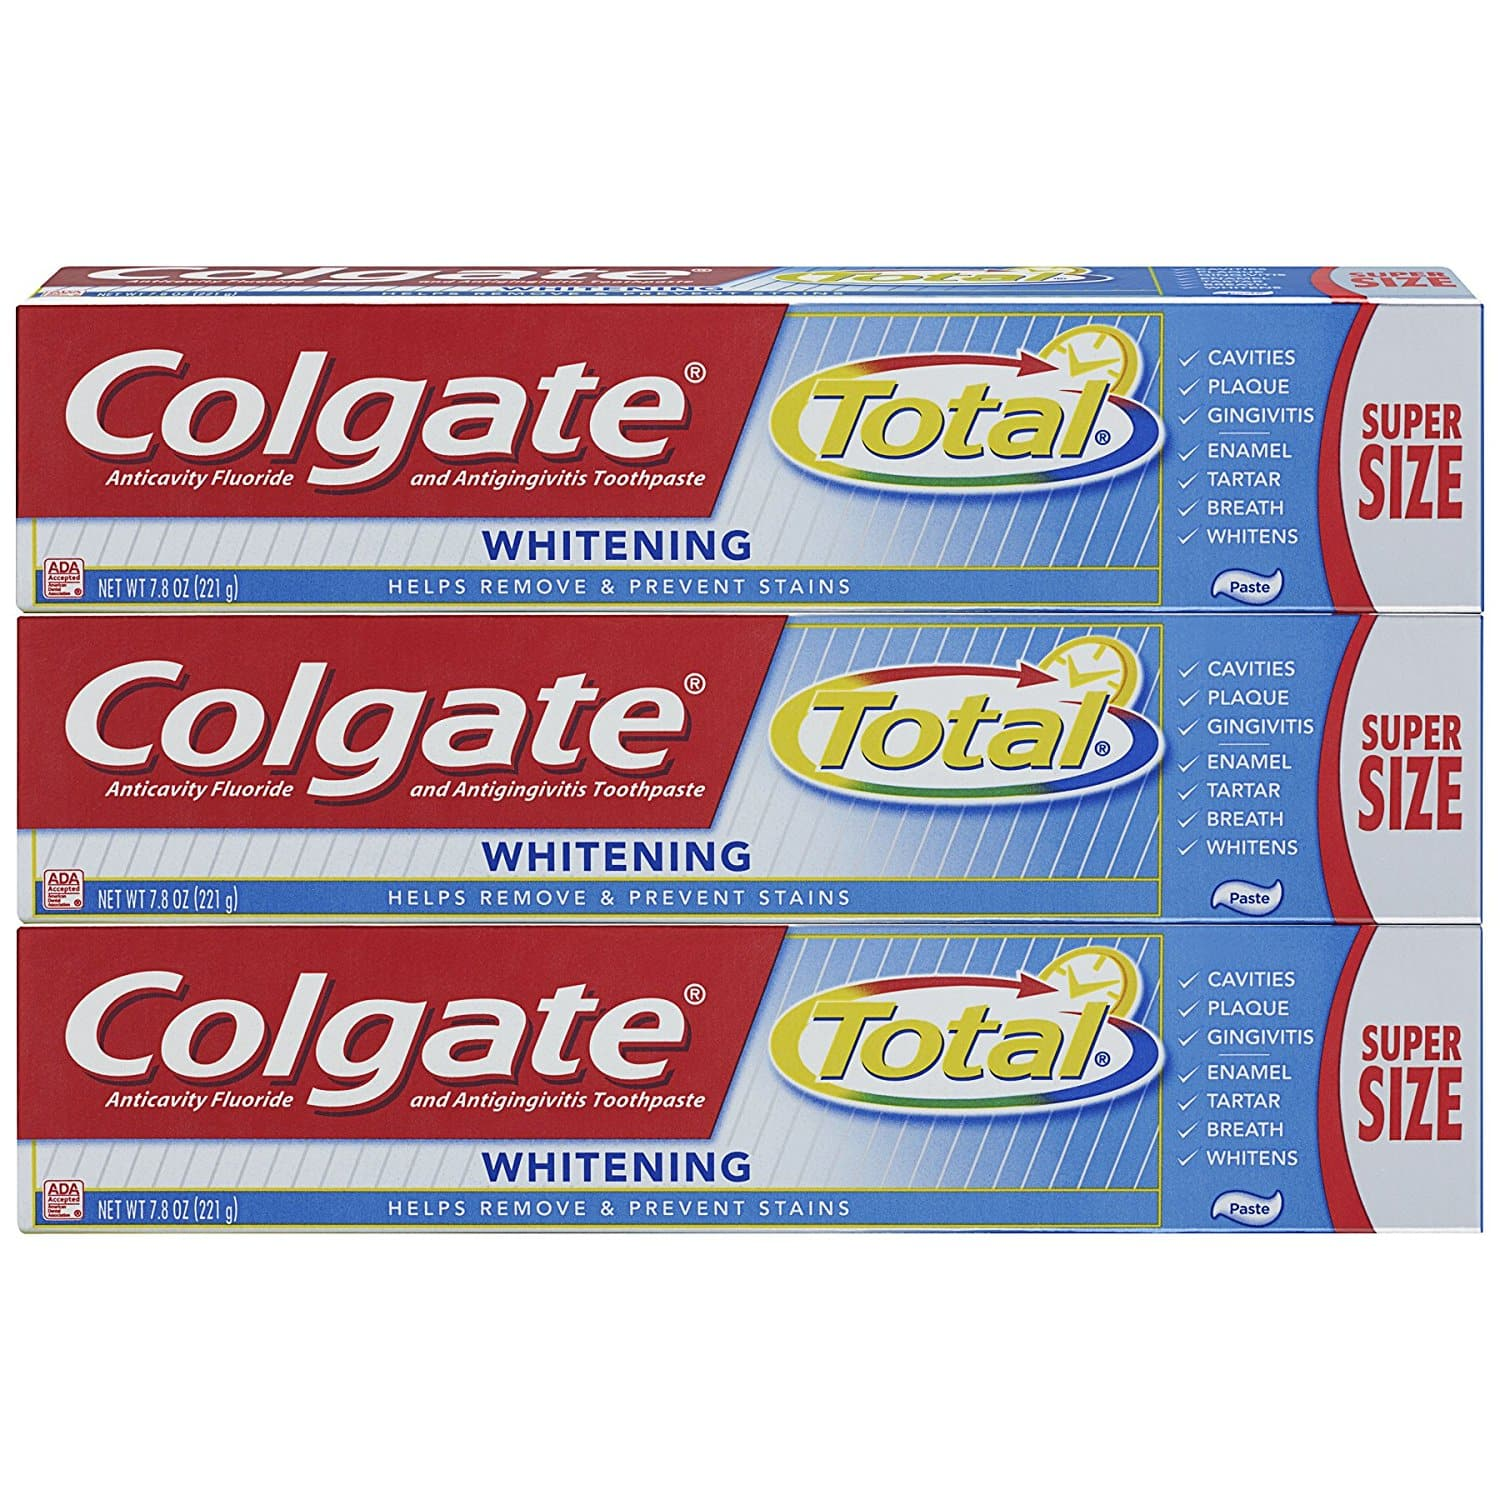 Colgate Total Whitening Toothpaste - 7.8 ounce (3 Count) $6.55